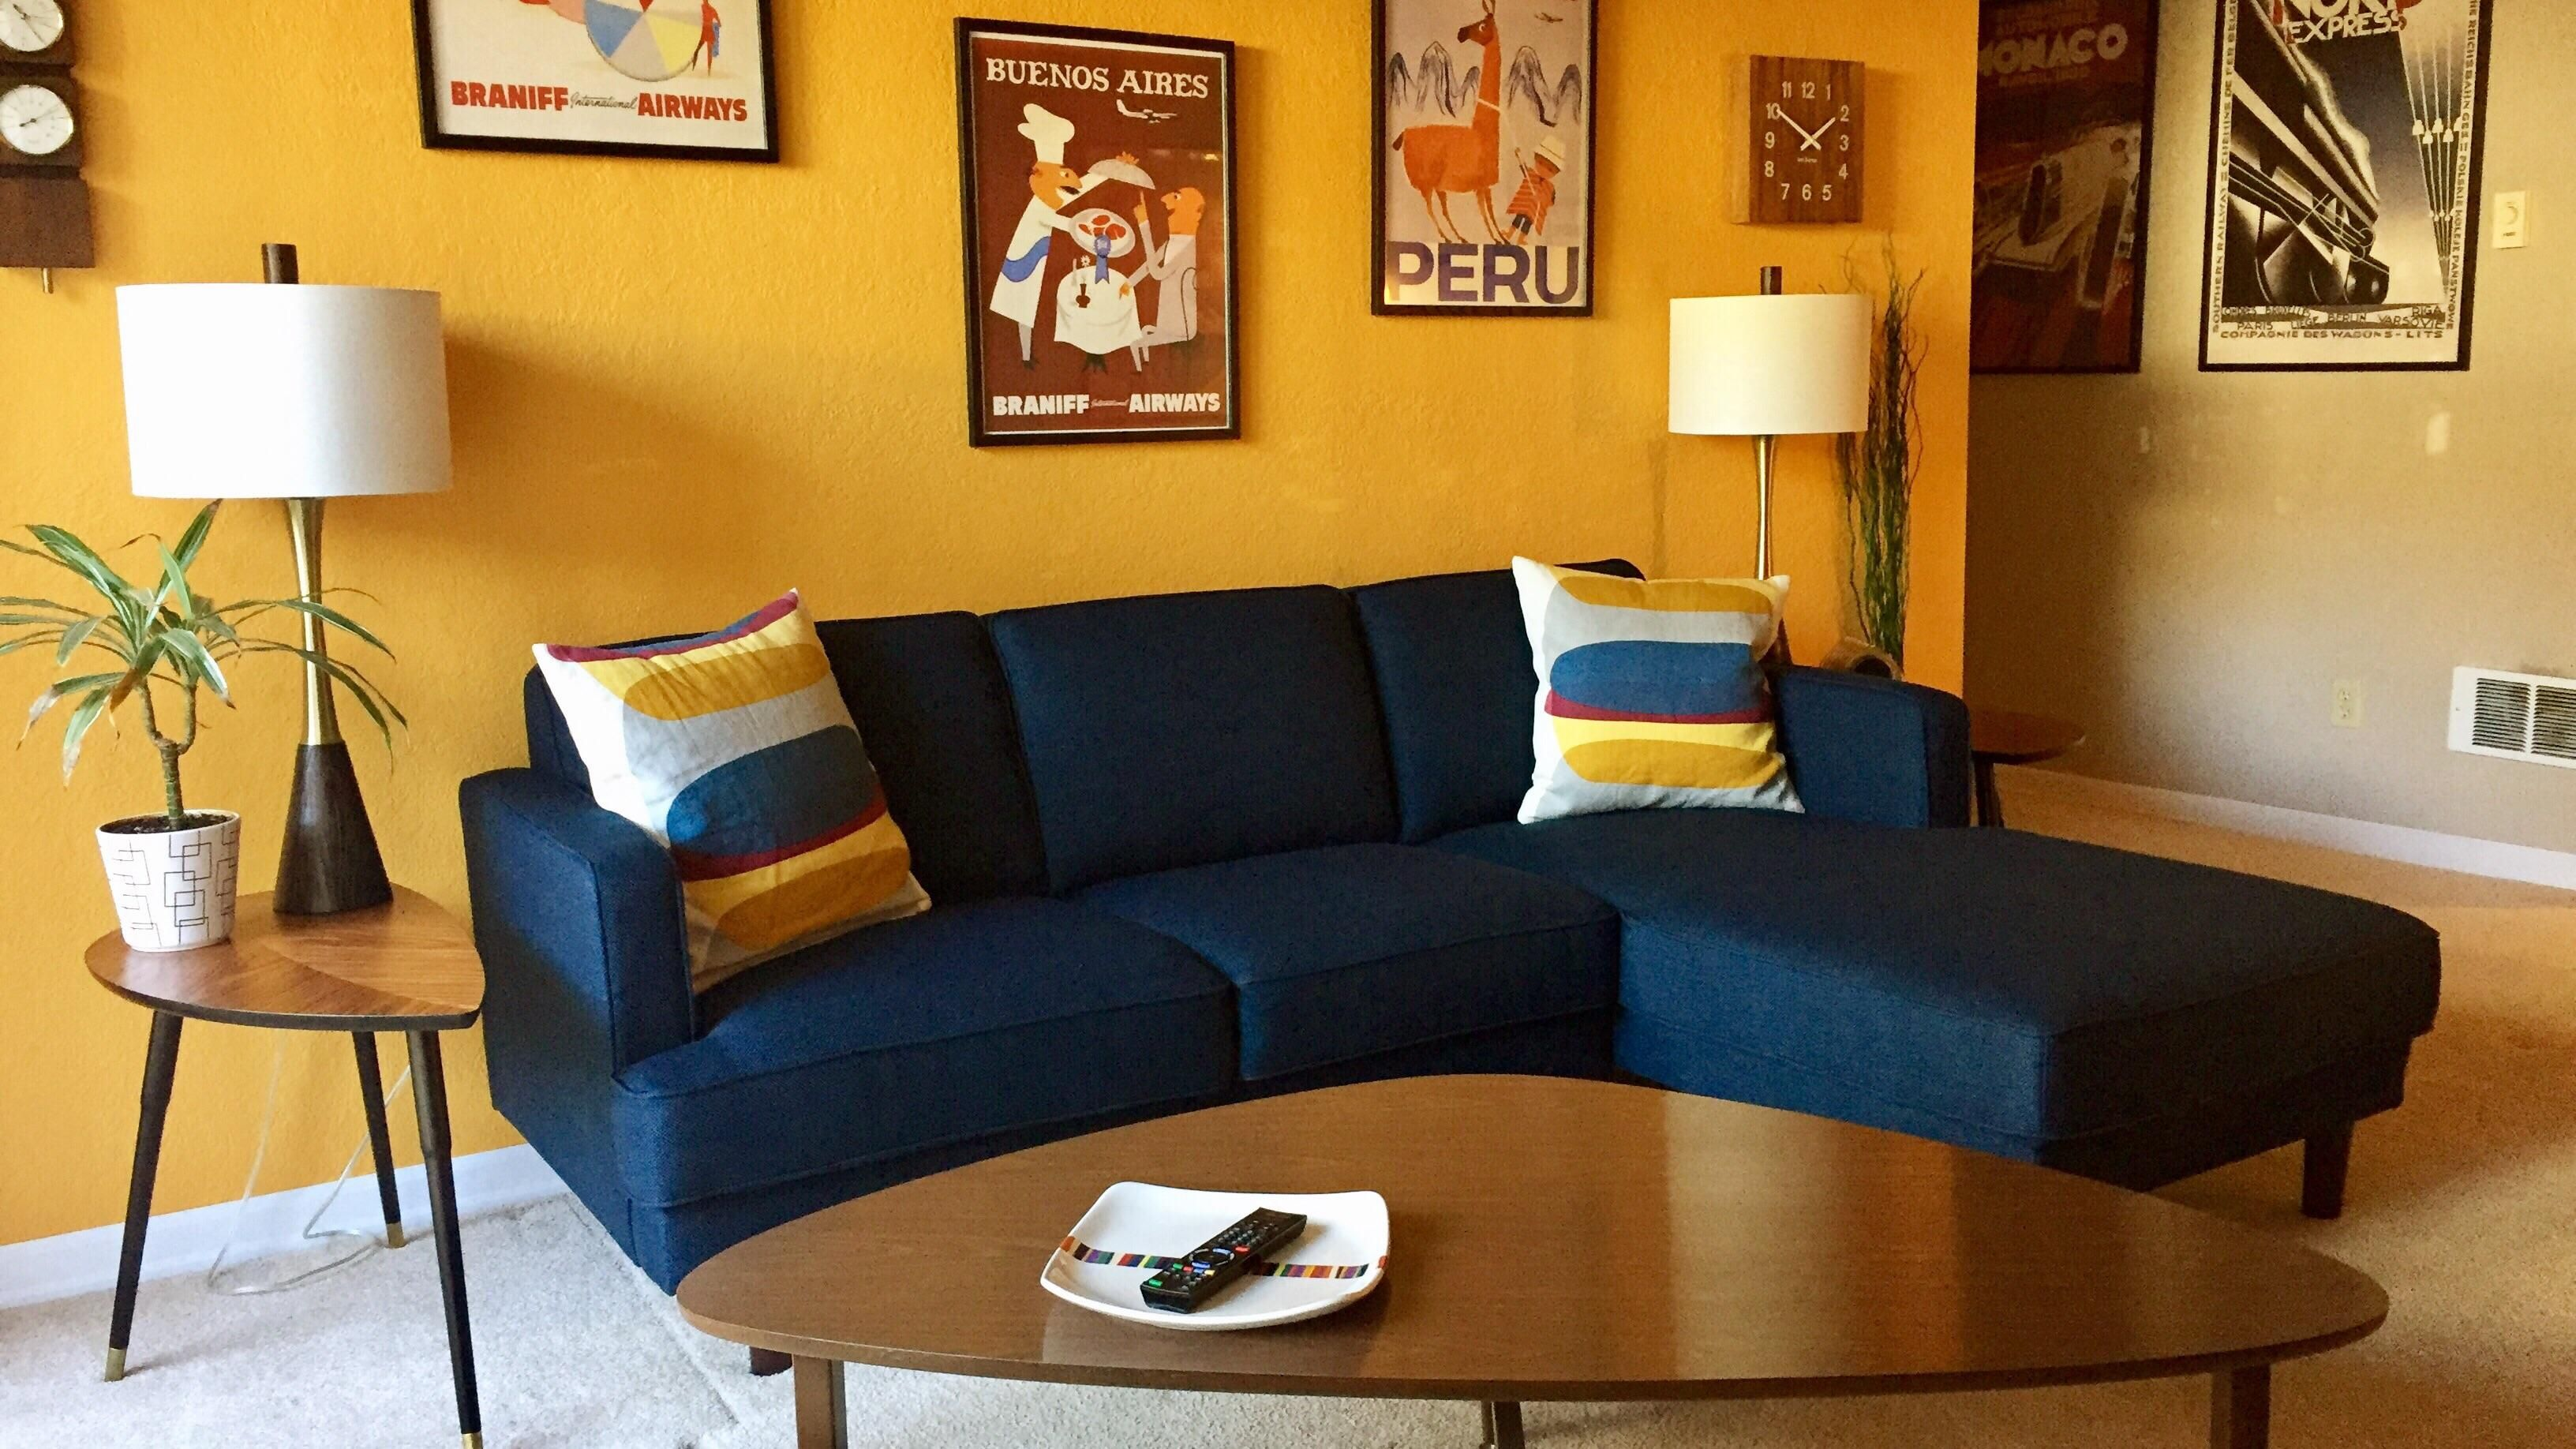 Pin By Brooks Mccorcle On Home In 2020 Blue Sofas Living Room Yellow Walls Living Room Teal Living Room Decor